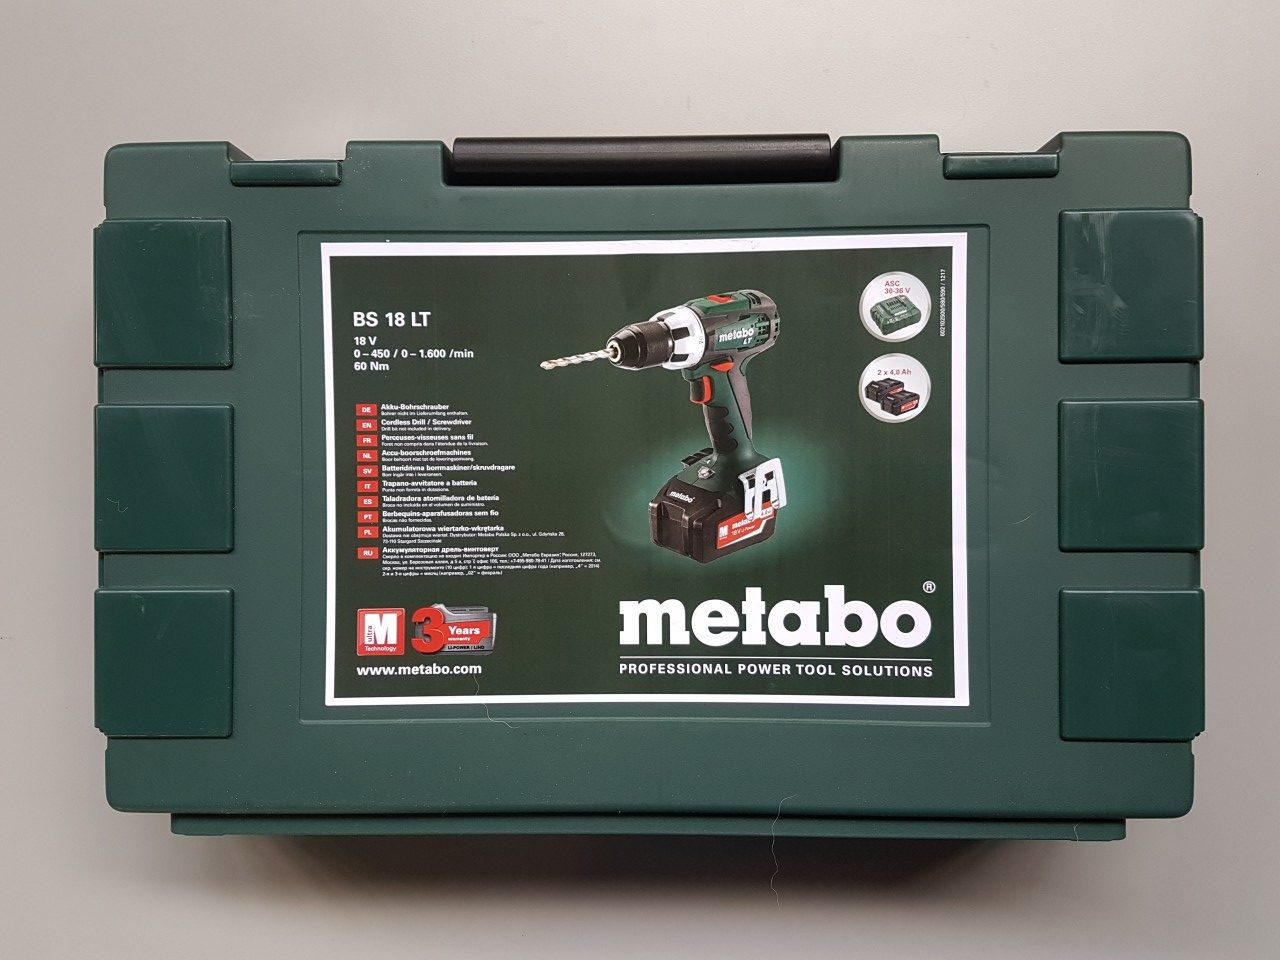 Metabo accuboormachine Metabo accuboormachine